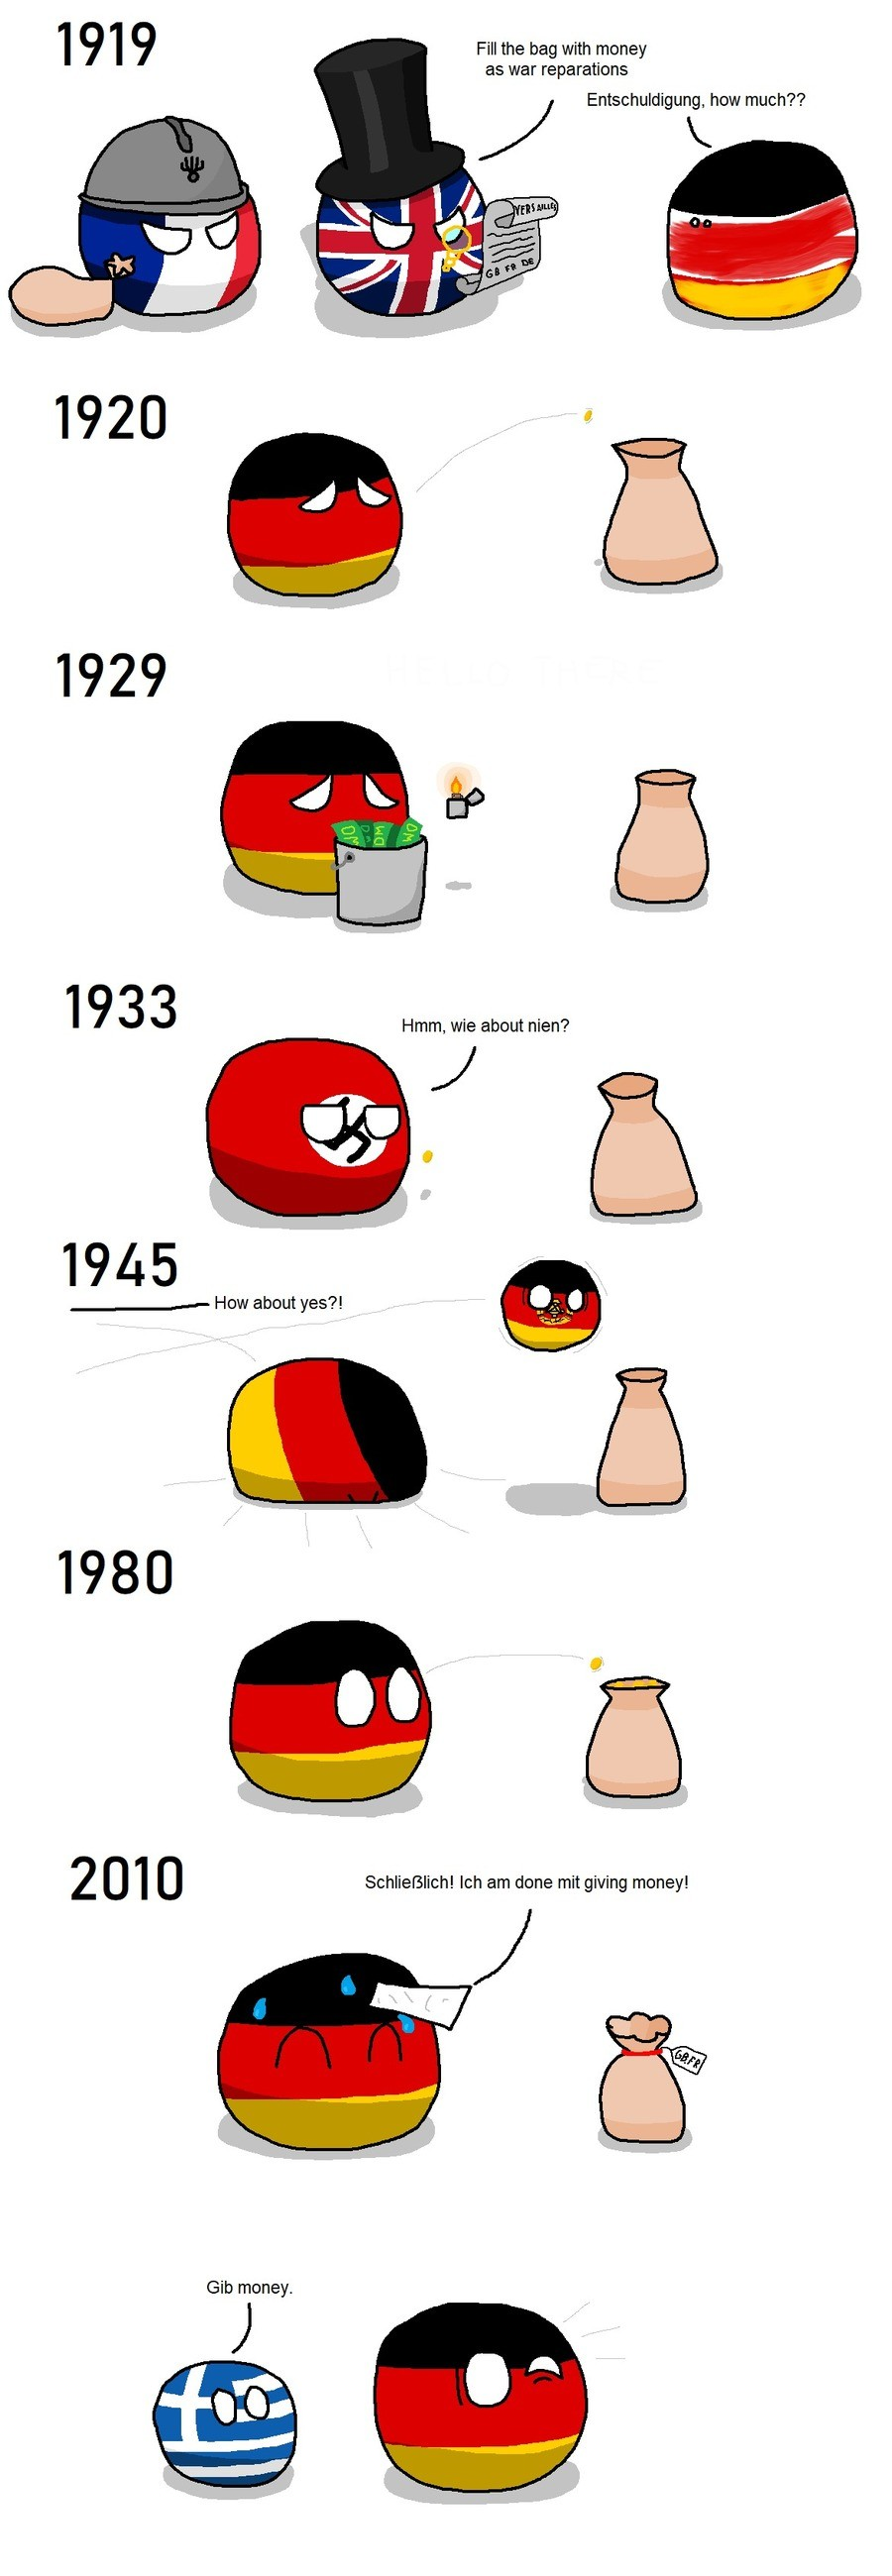 destitute bounding Echidna. .. Germany Getting blamed and charged for both World Wars that were actually started by Austrians.